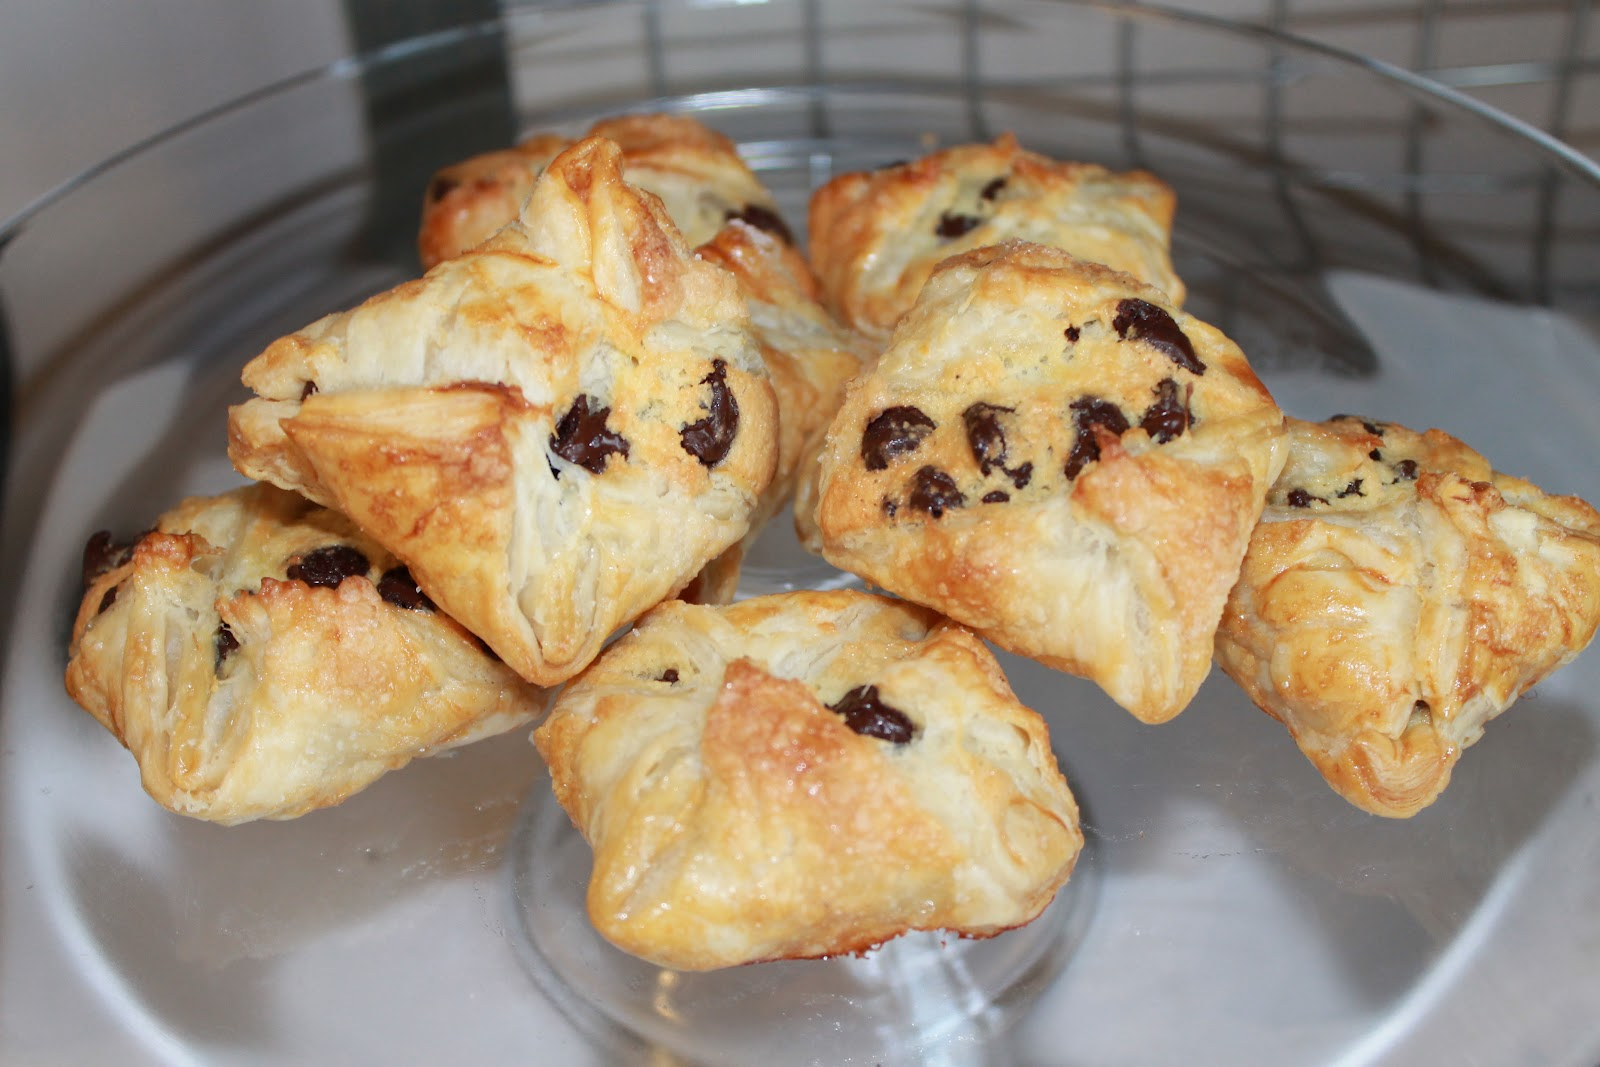 Desserts by Annie: Chocolate Almond Puff Pastry Bundles